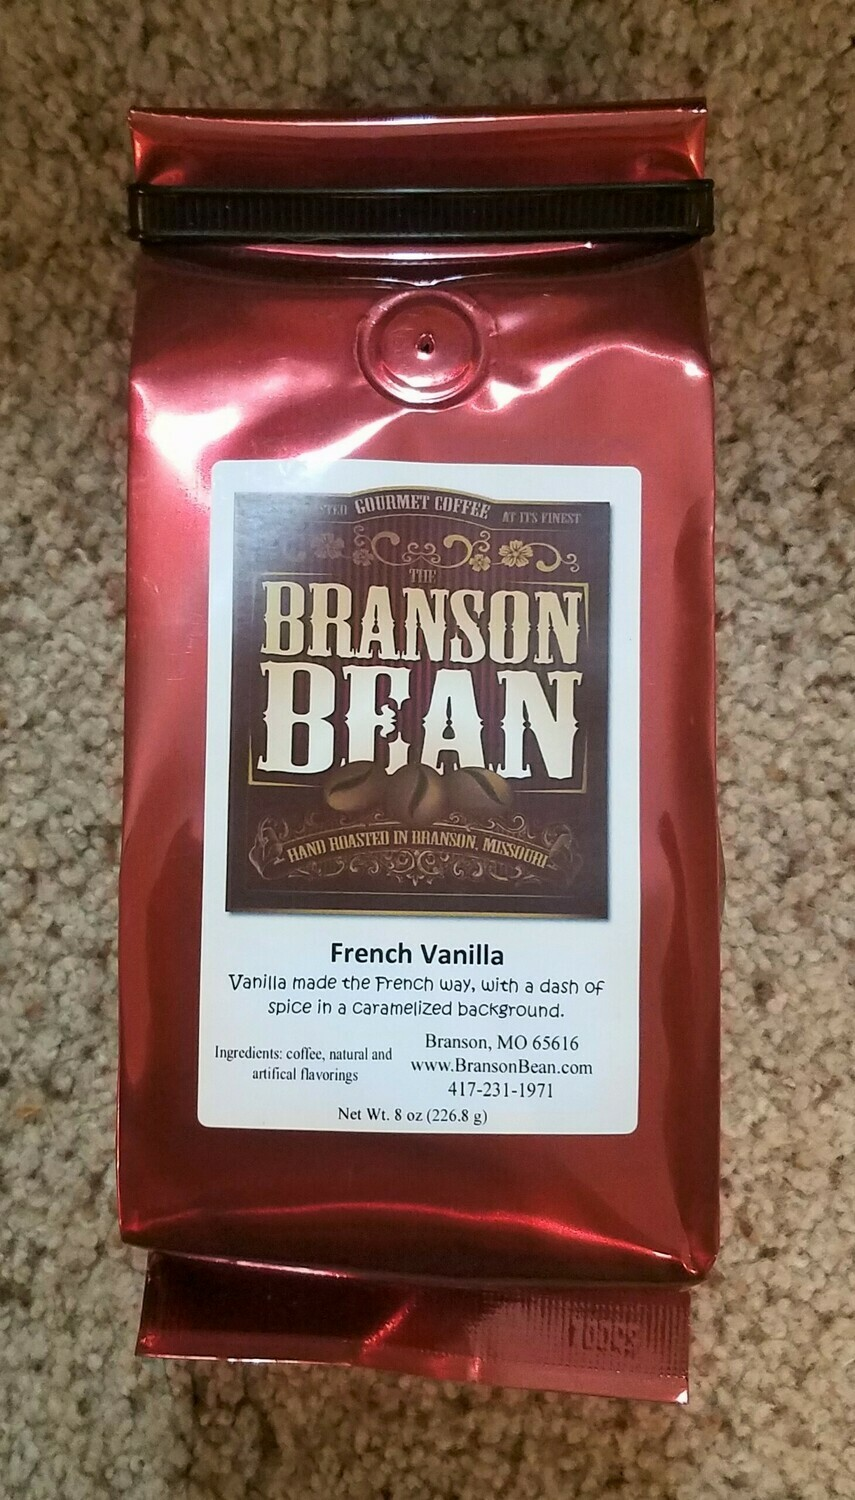 Branson Bean Coffee - French Vanilla